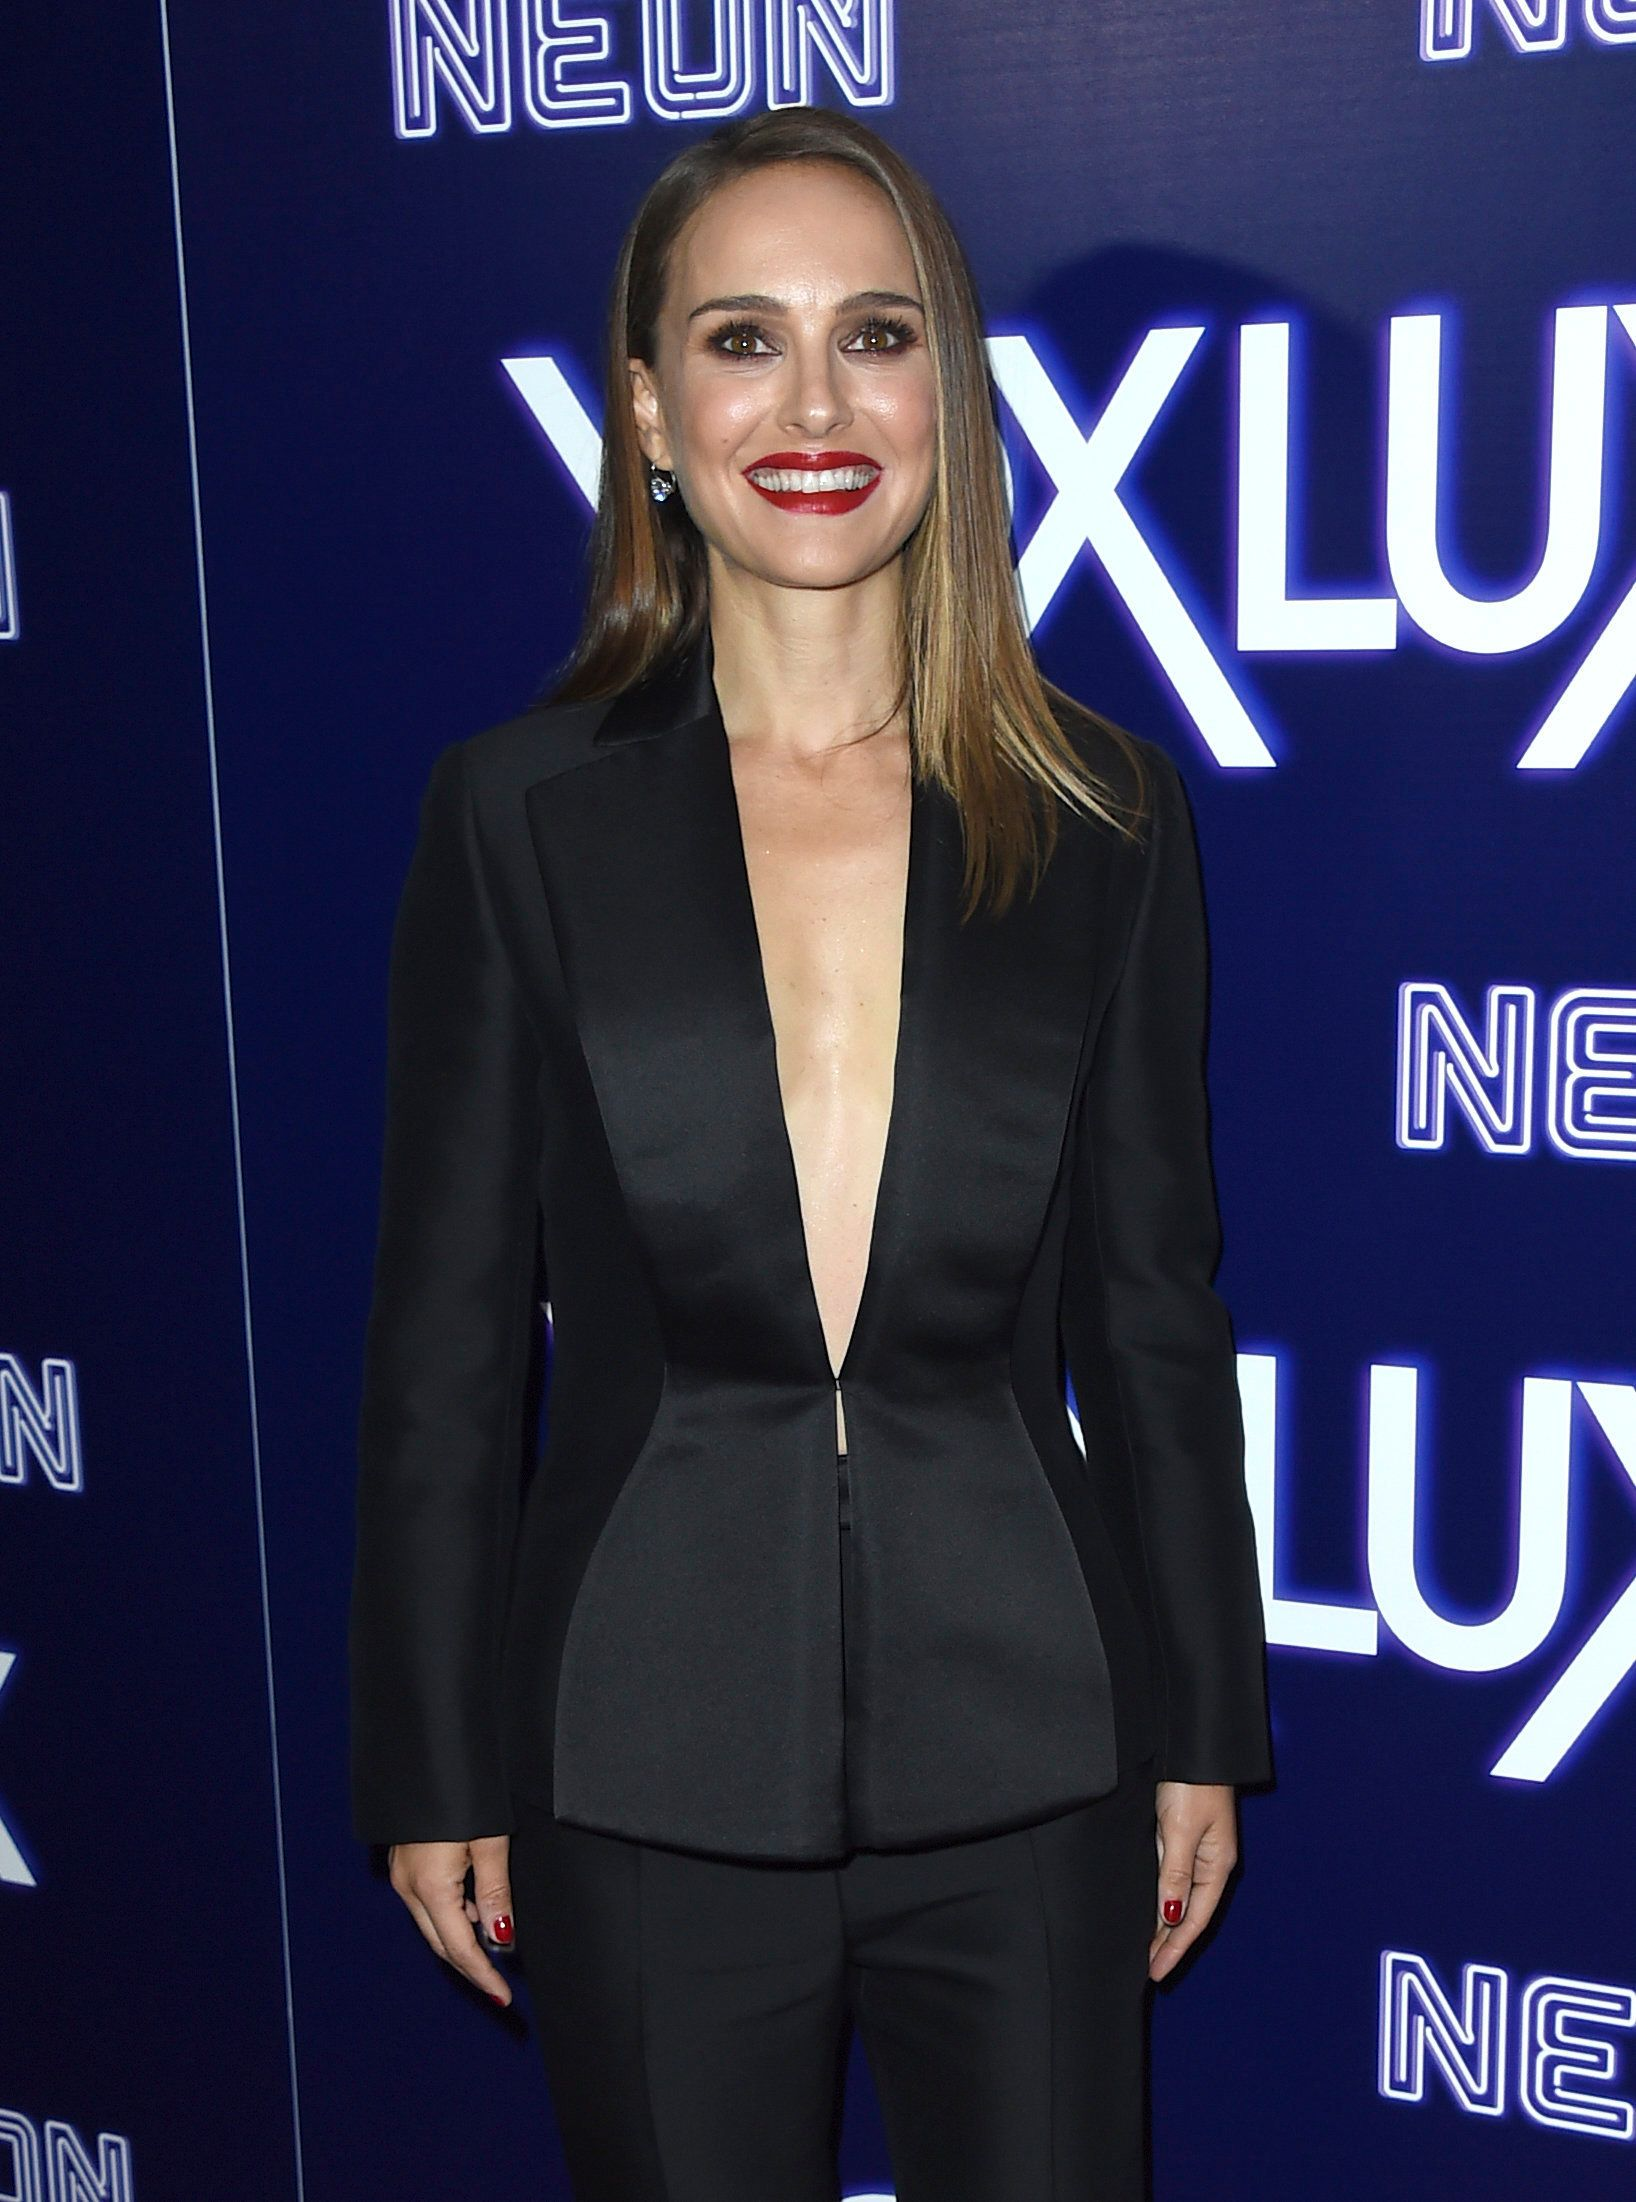 """Natalie Portman arrives at the Los Angeles premiere of """"Vox Lux"""" on Wednesday, Dec. 5, 2018, at ArcLight Hollywood. (Photo by Jordan Strauss/Invision/AP)"""